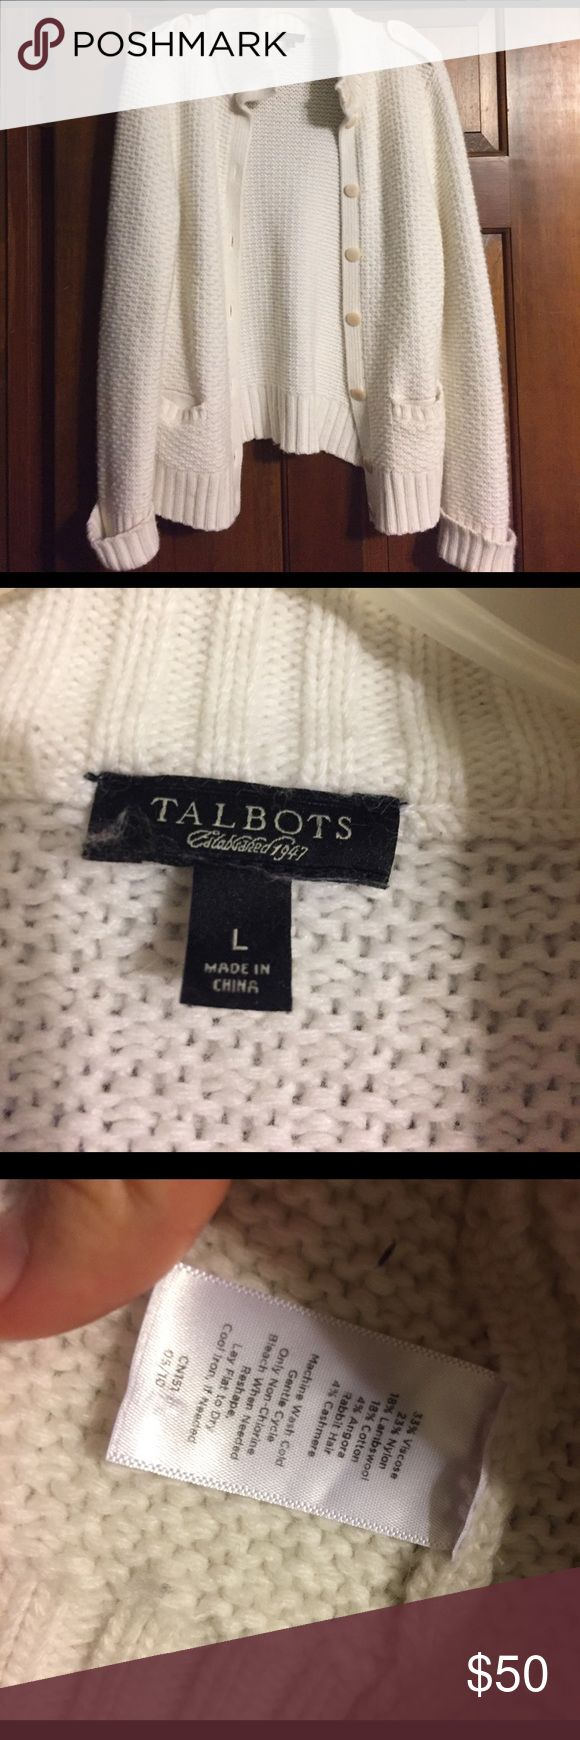 "Talbots Rabbit Hair/Cashmere Jacket I love this jacket! (But don't get much cold weather in ☀️ Florida). Excellent condition. No stains and super soft! Arm length from shoulder 24"", arm pit to arm pit length at back 17"", and length from bottom of collar to bottom at back is 23"". Not sure what category to exactly put this in on poshmark Talbots Sweaters Cardigans"